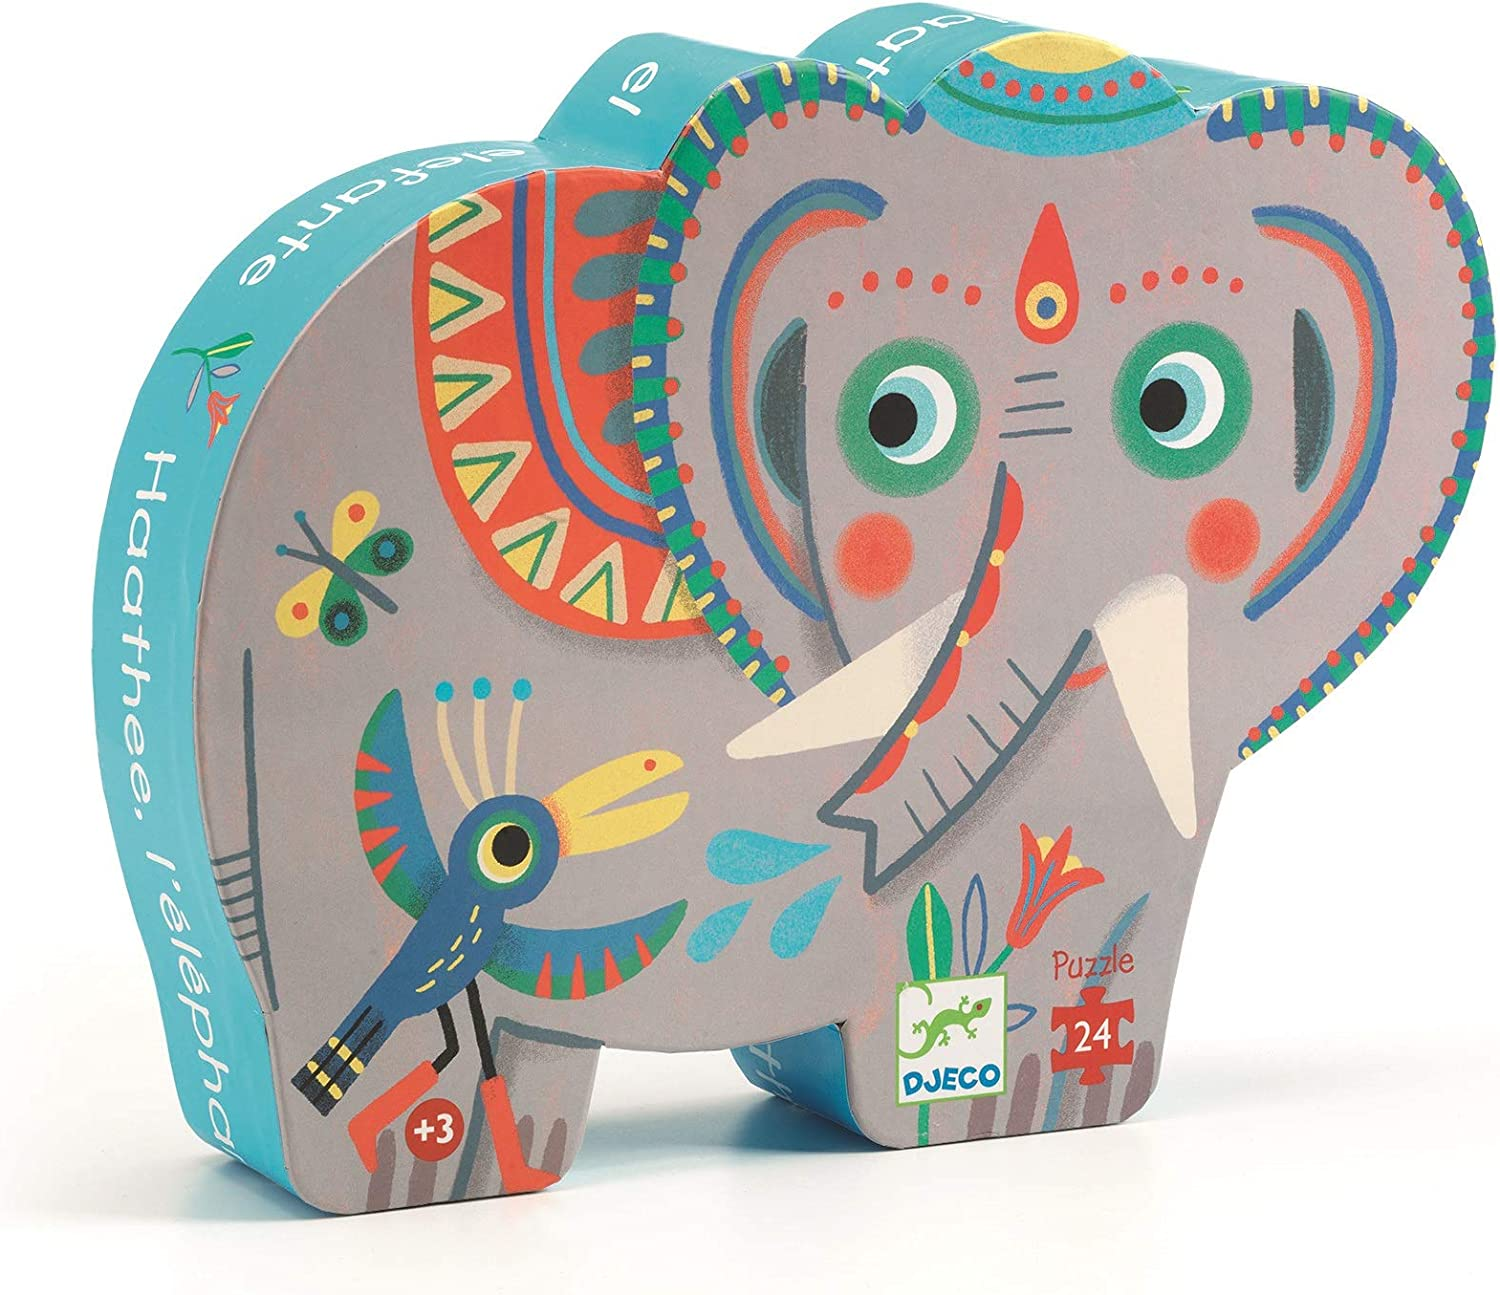 DJECO Haathee Asian Elephant Silhouette Jig Saw Puzzle